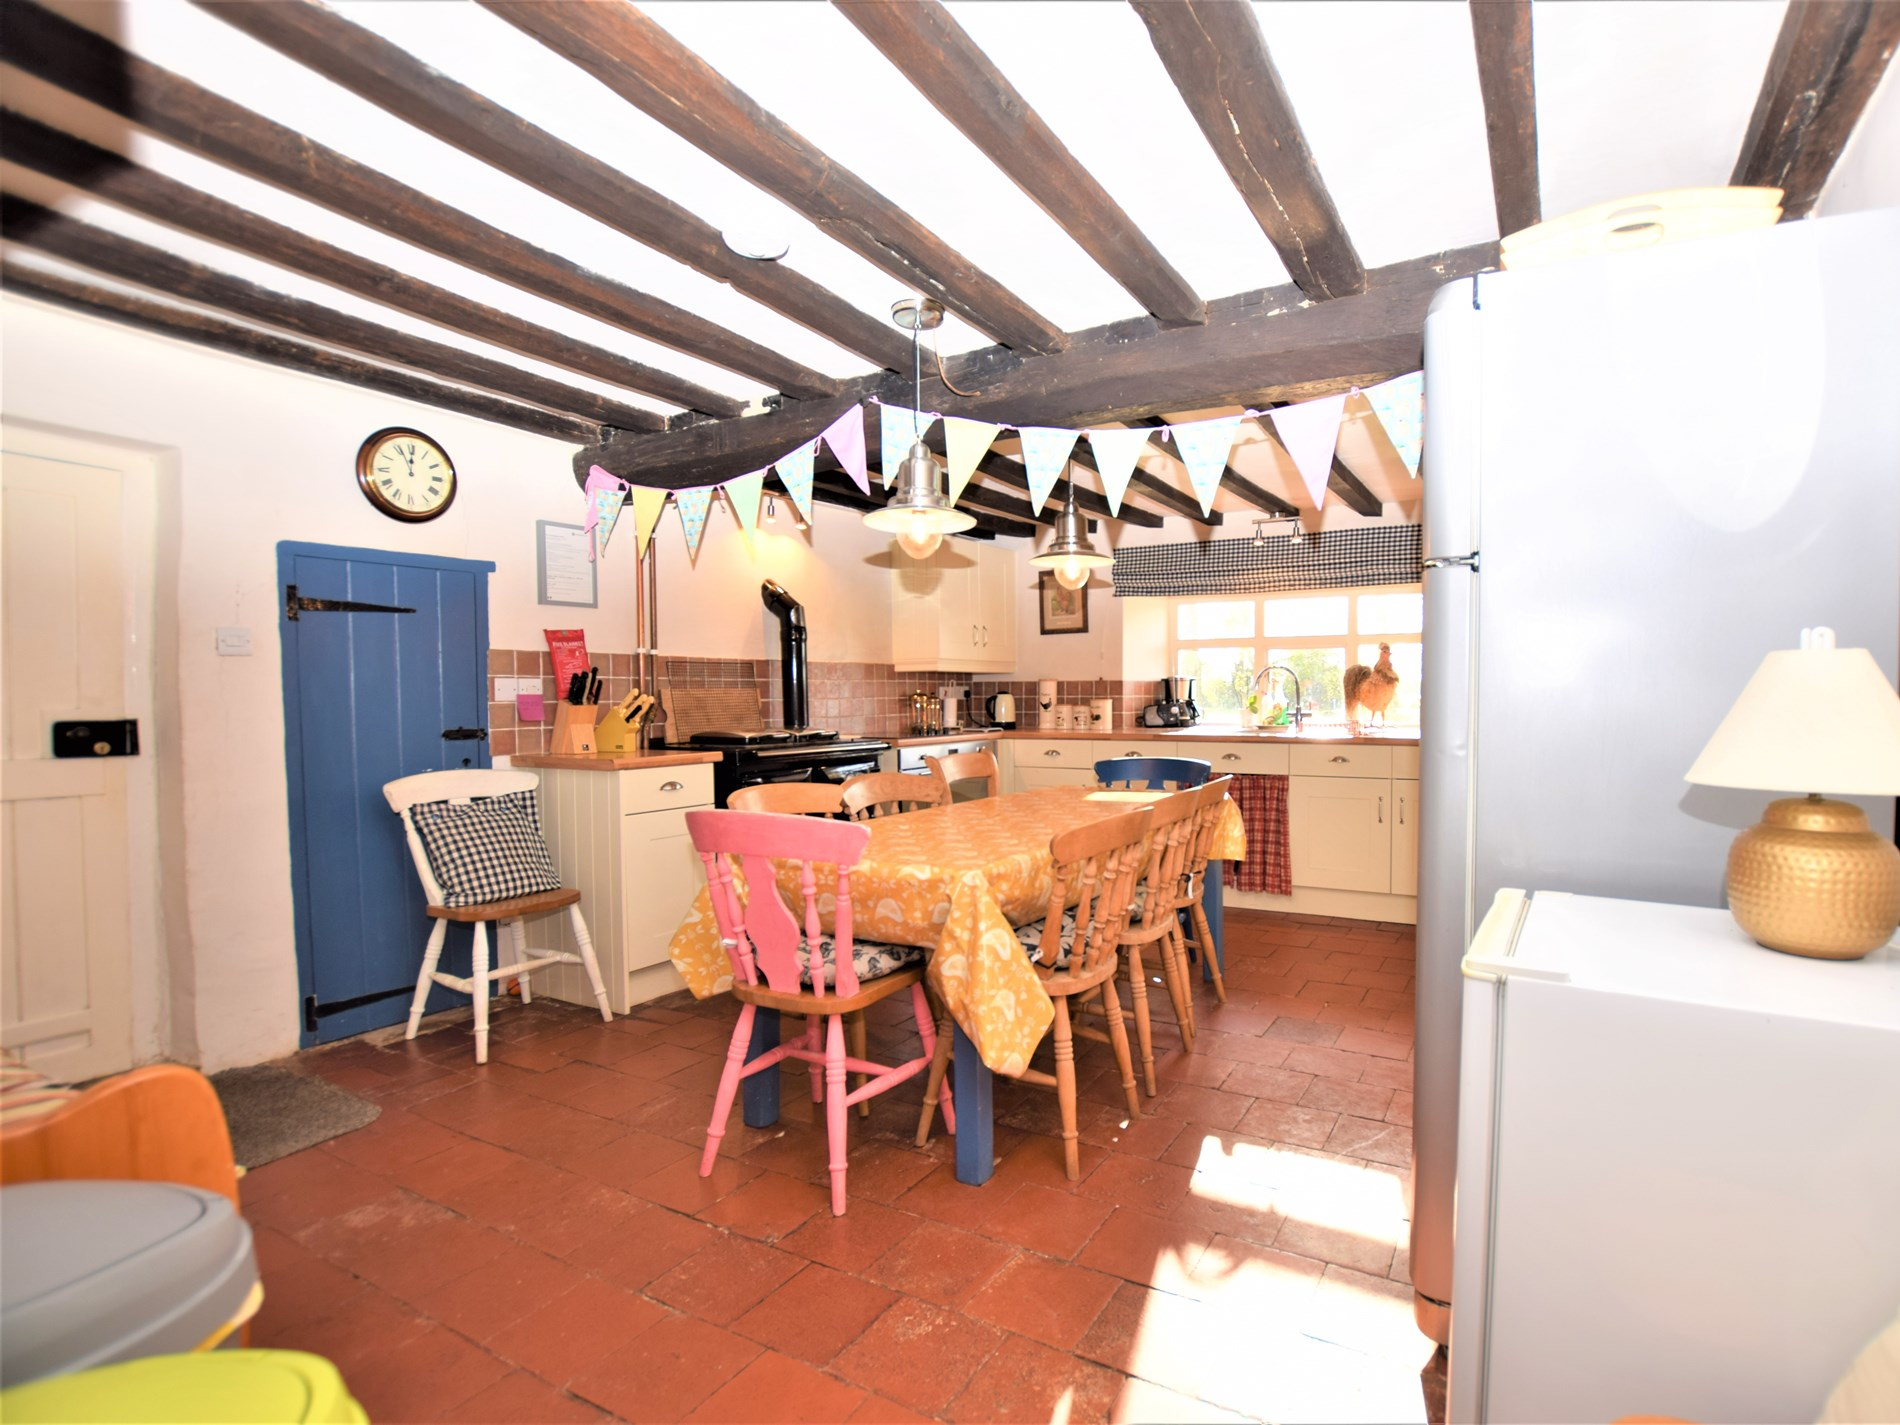 6 Bedroom Cottage in Norwich, East Anglia